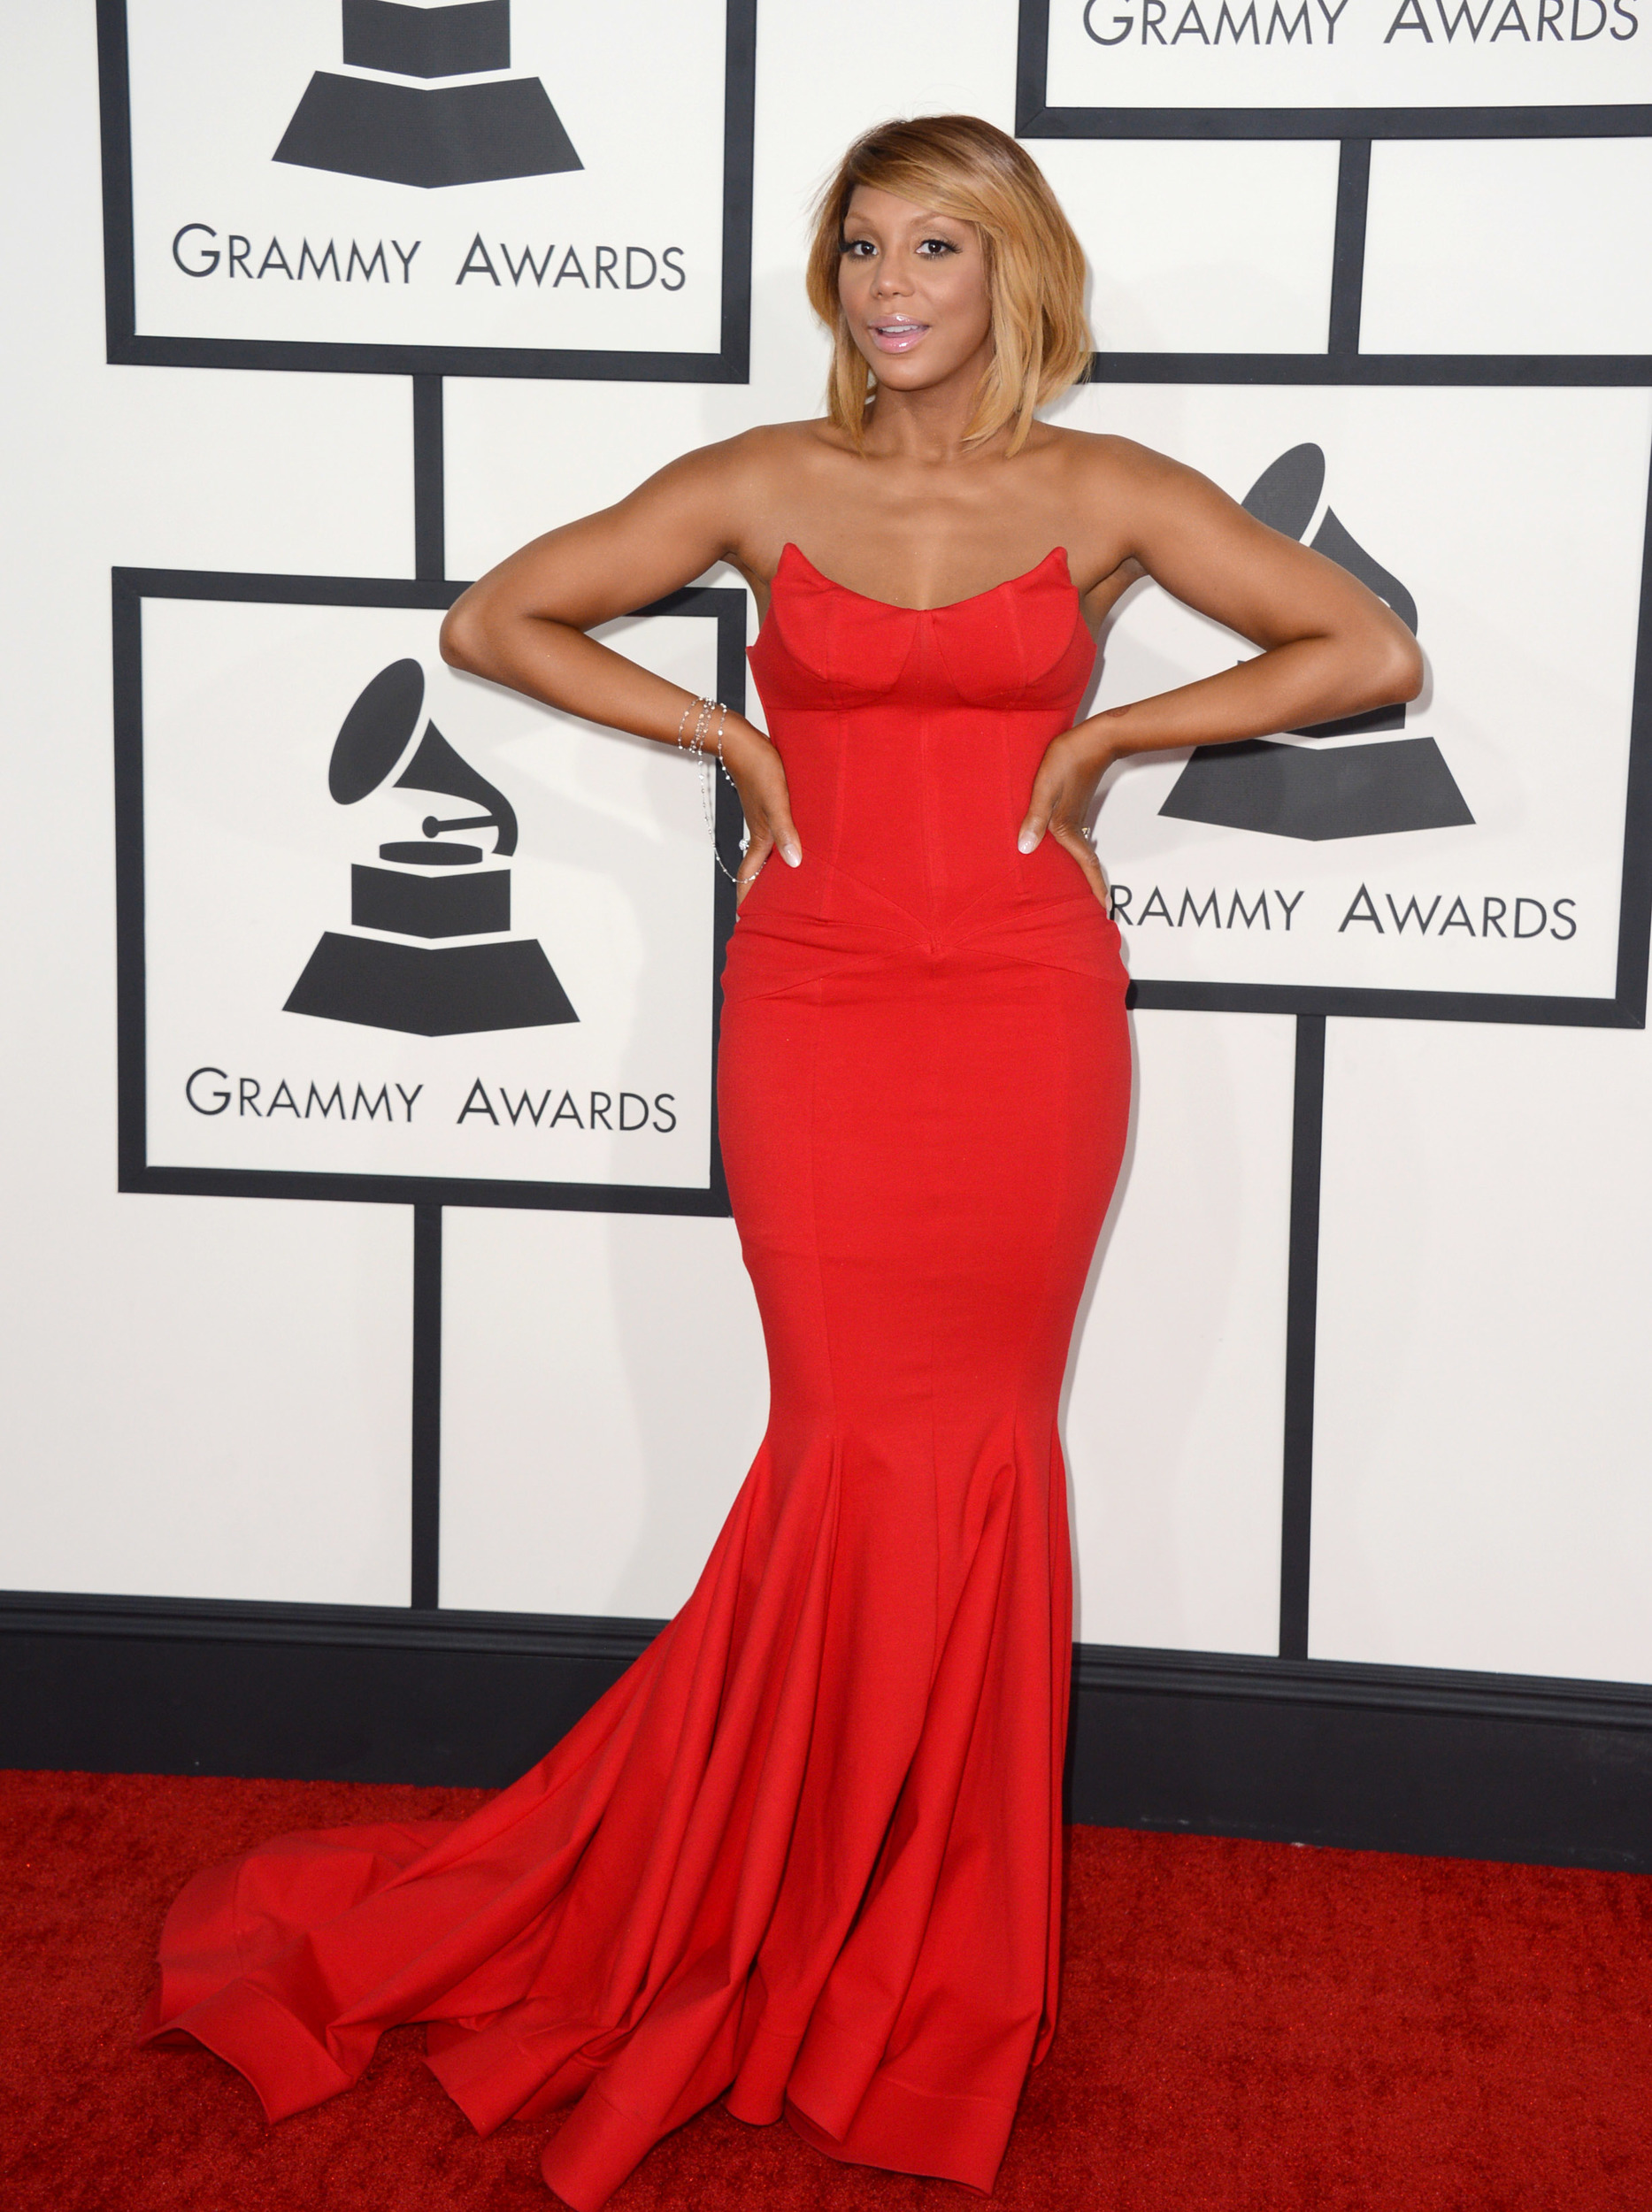 Celeb Moms Work Their Red Carpet Fashions During Grammy Awards